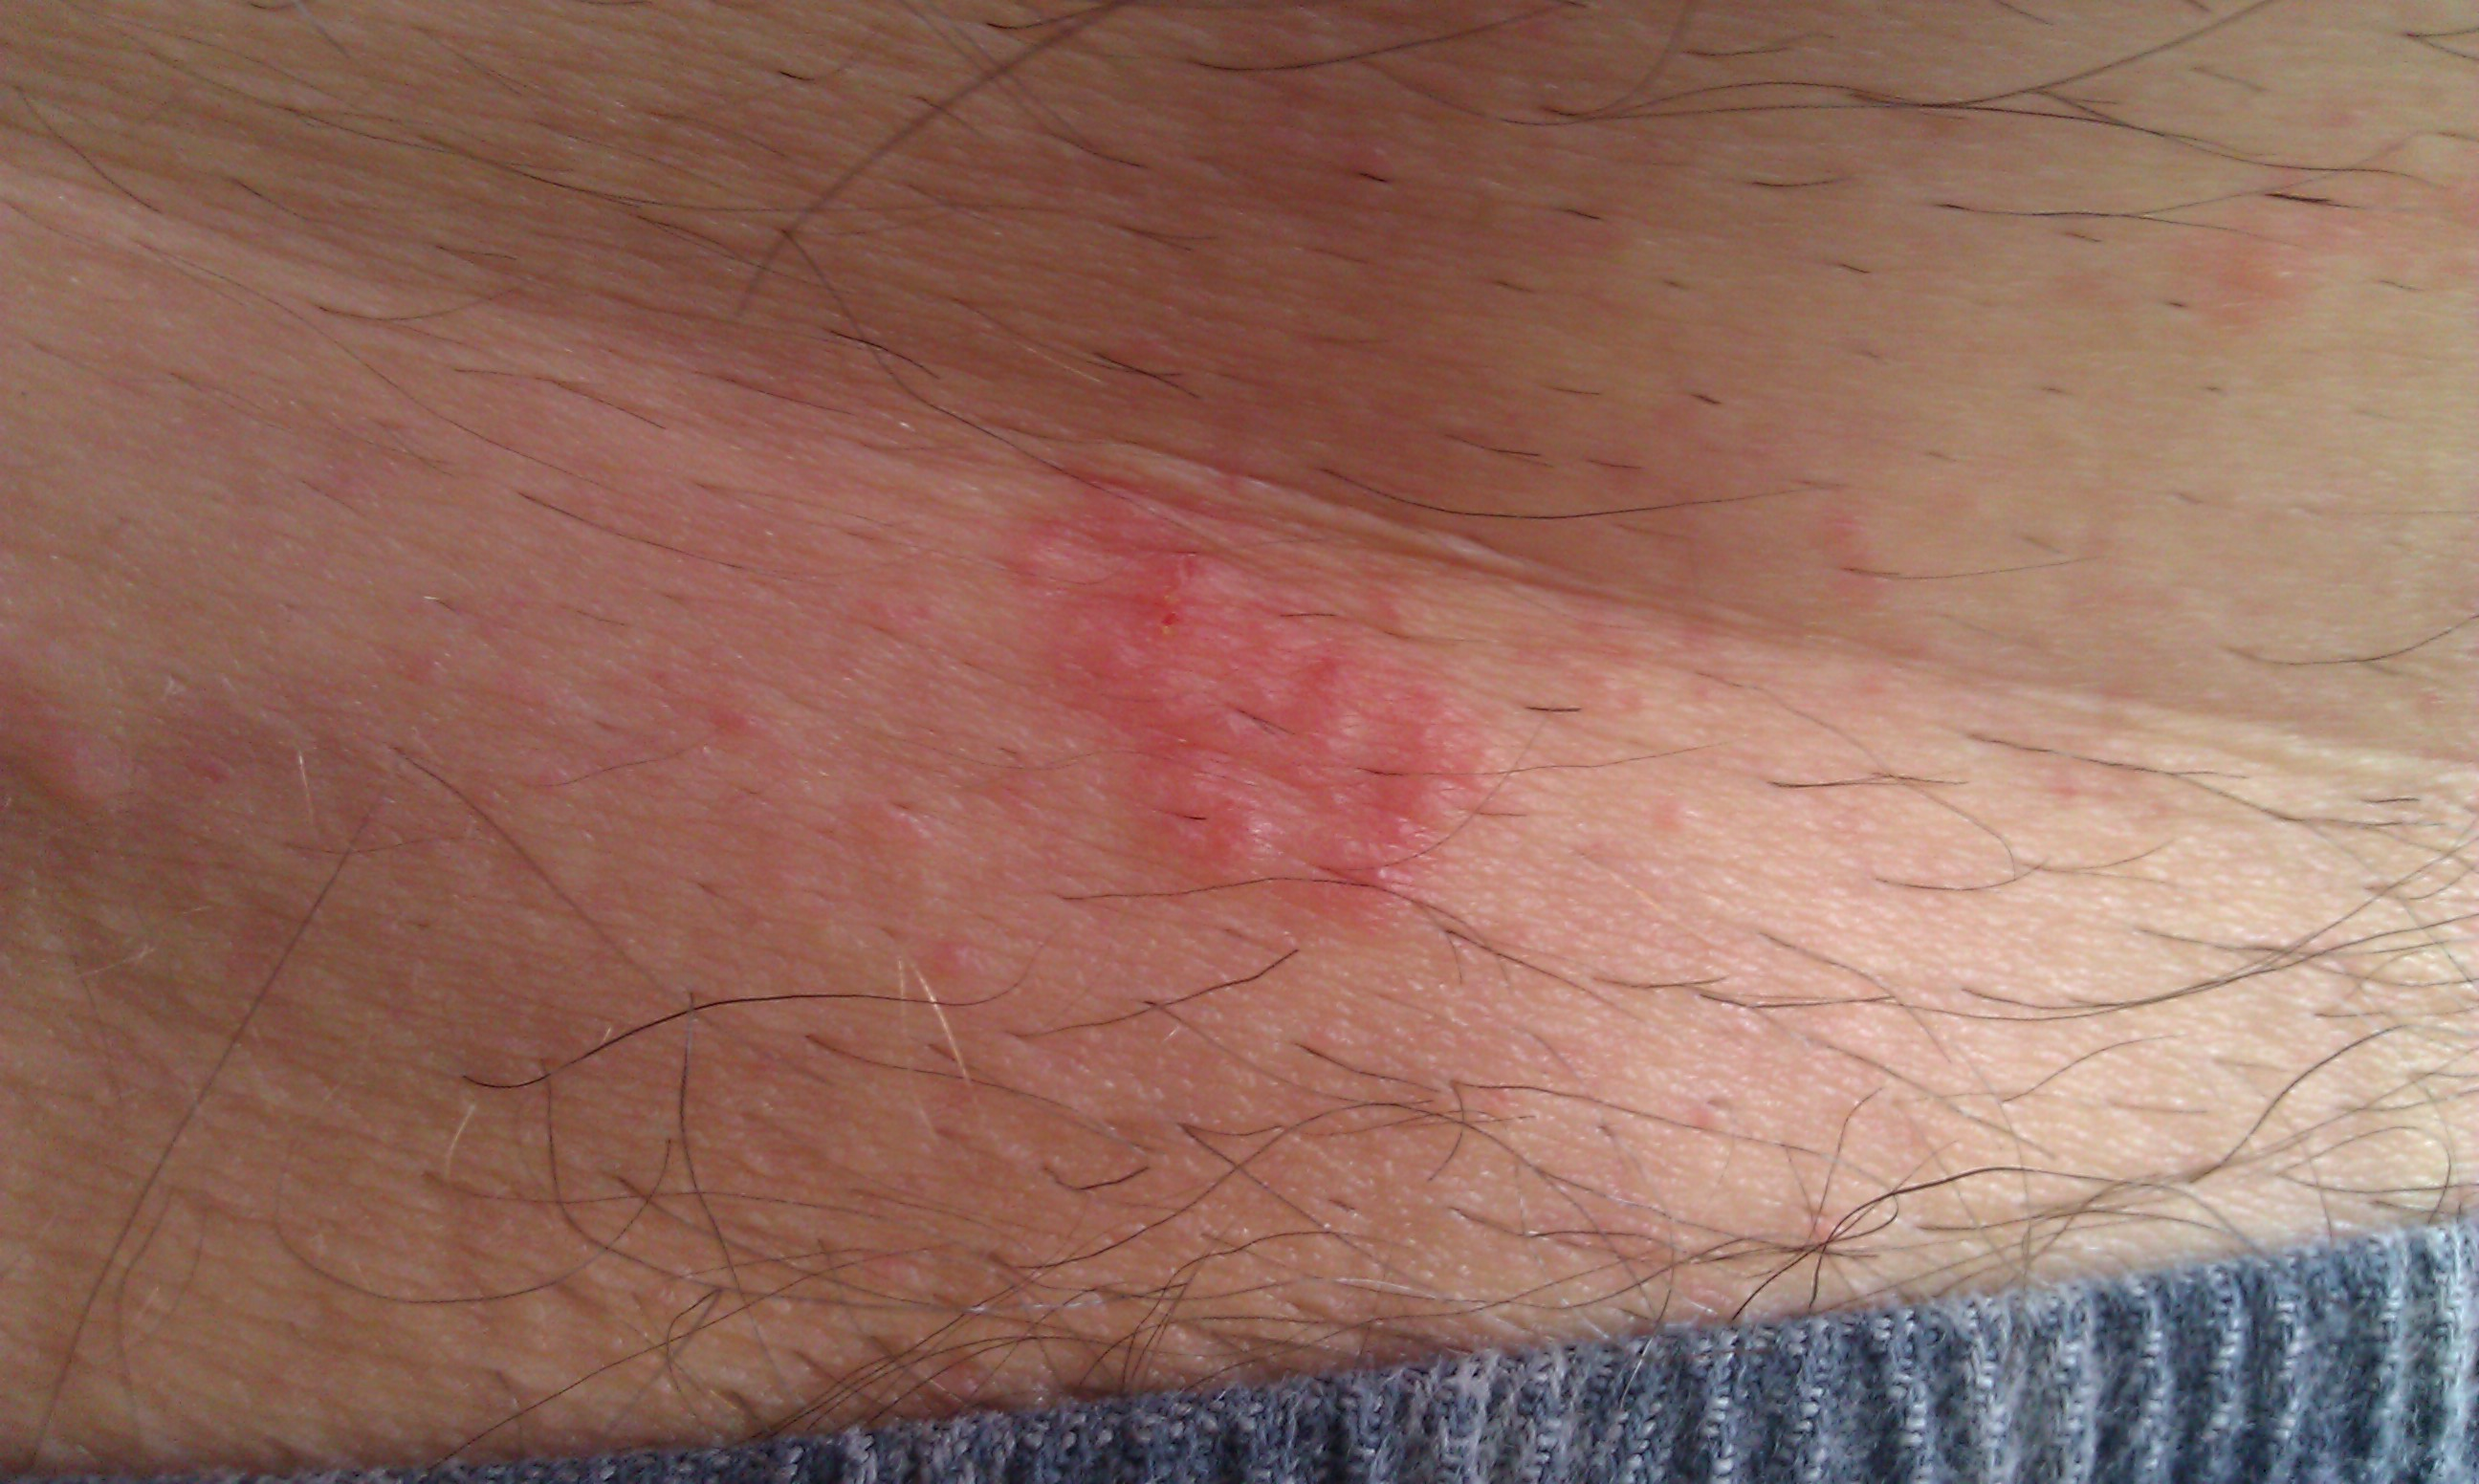 Sudden bright, red, and itchy rash on torso - Skin Forum ...